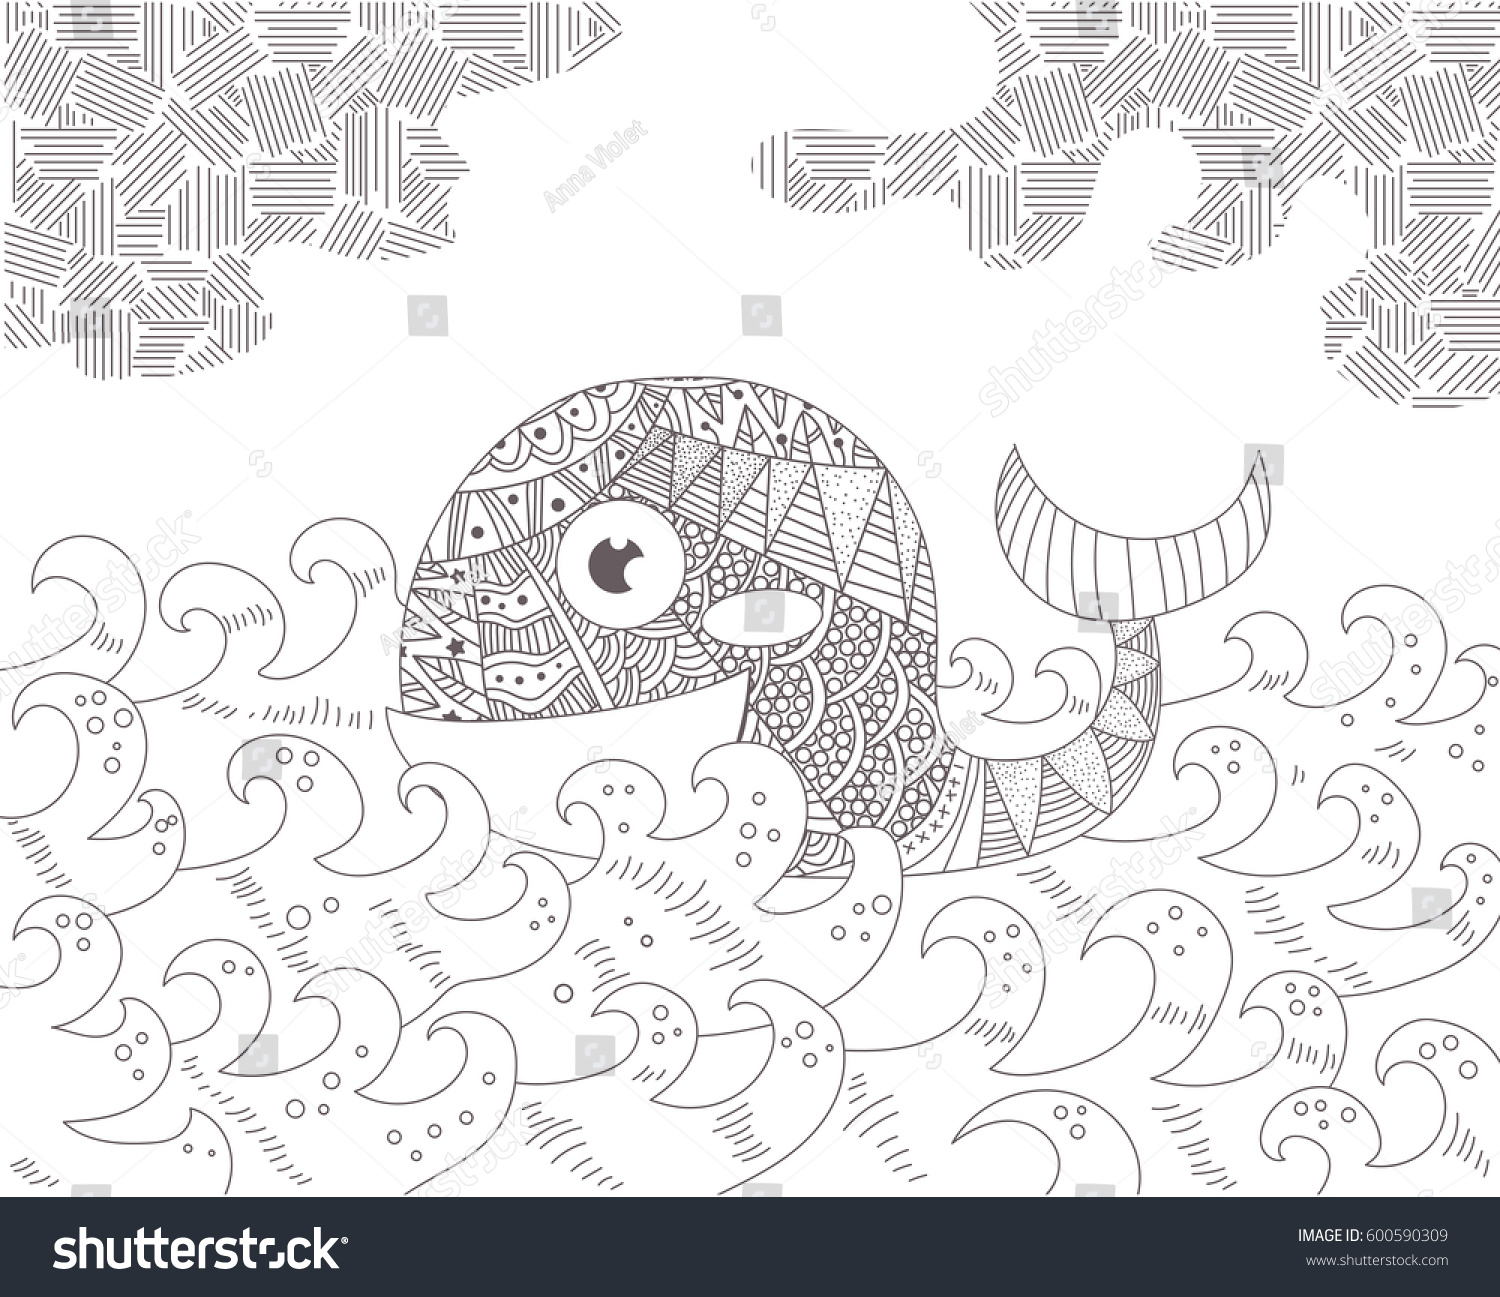 Zen ocean colouring book - Whale In The Ocean Waves Silhouette Black Illustration On White Background Zentangle